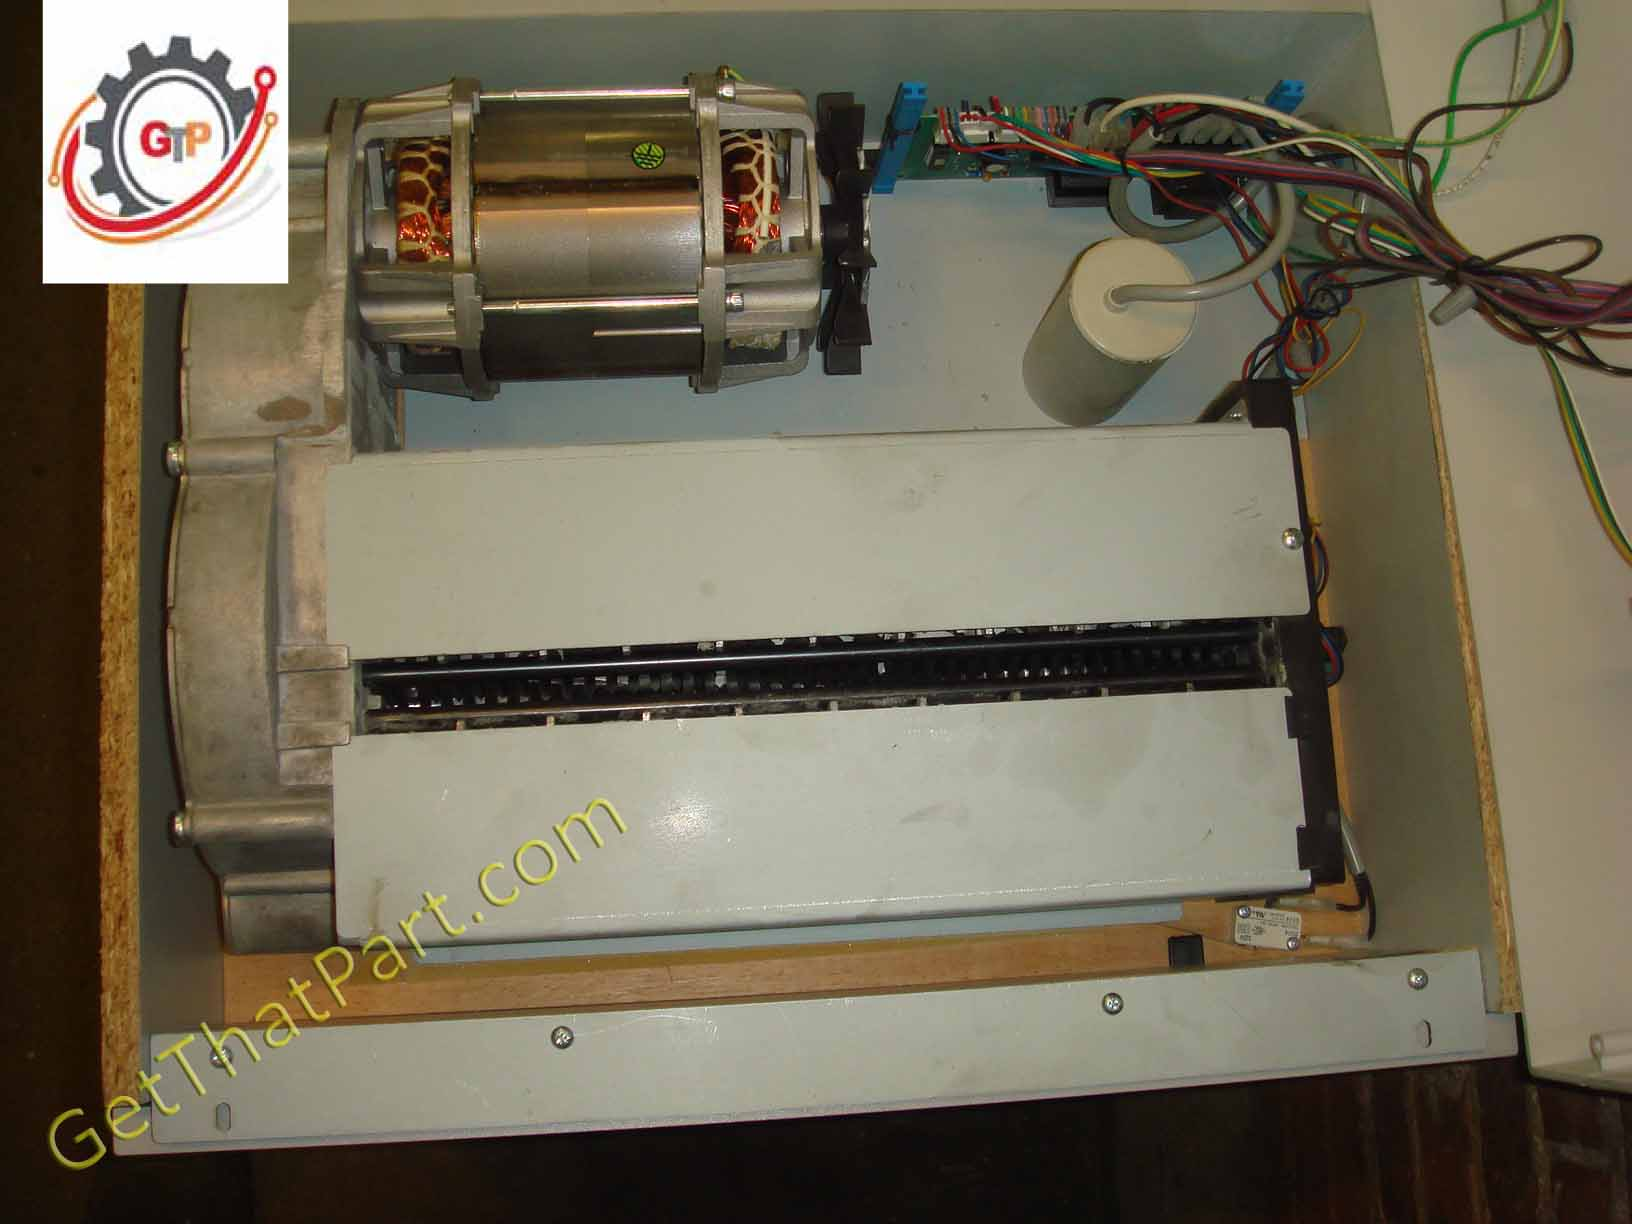 hsm 225.2 shredder manual